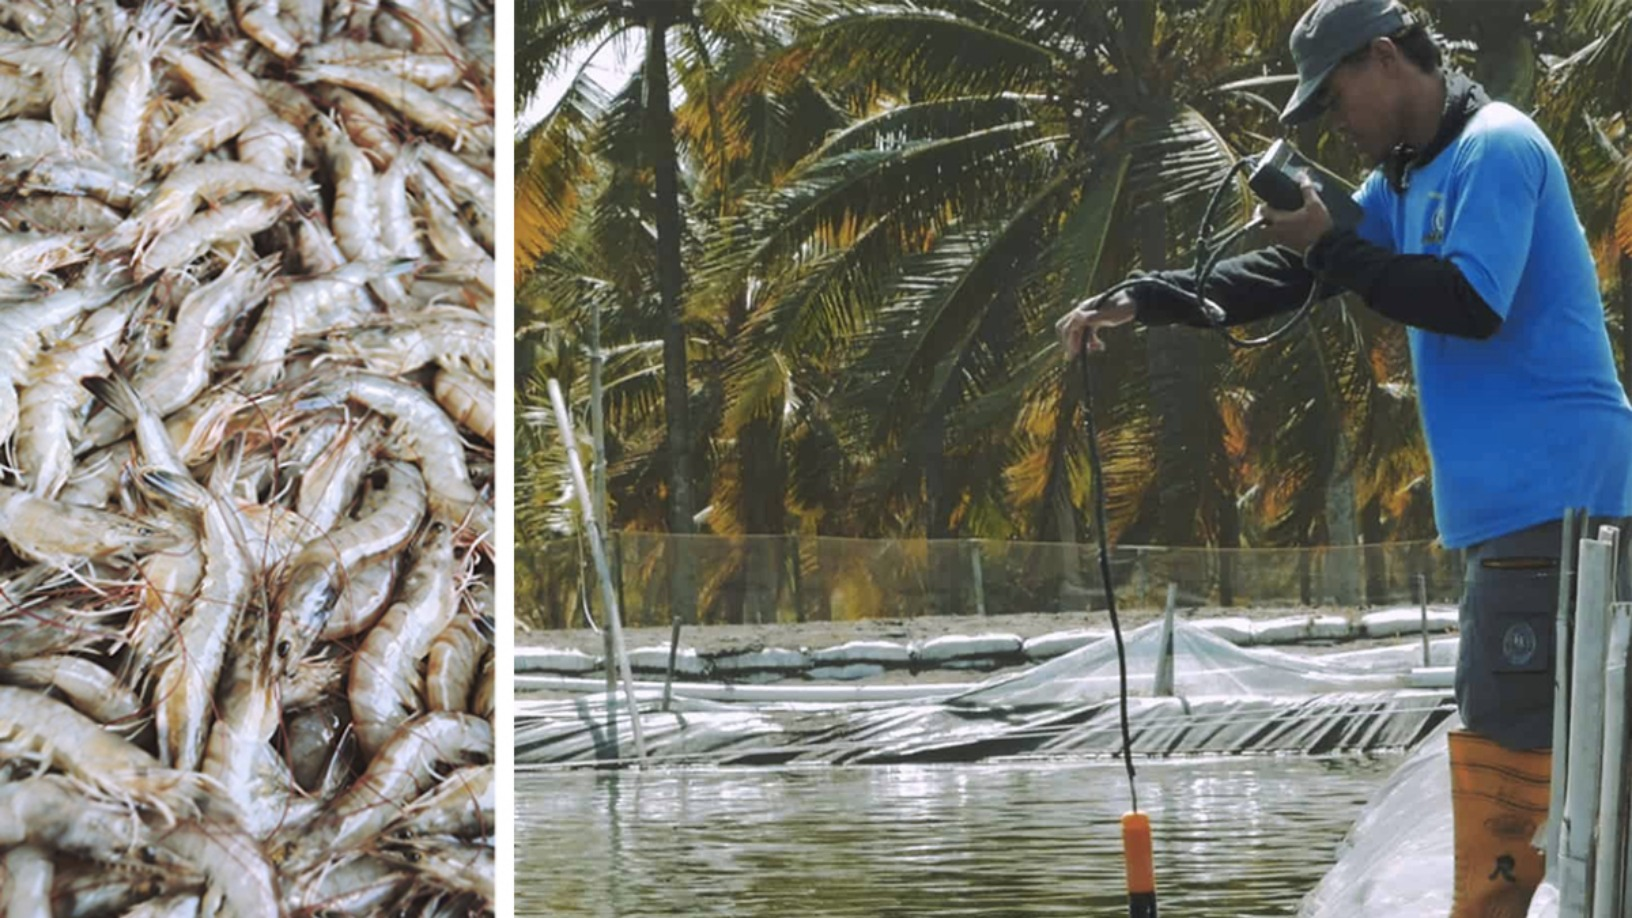 Shrimp-farming data made easy: Interview with JALA's CEO Liris Maduningtyas